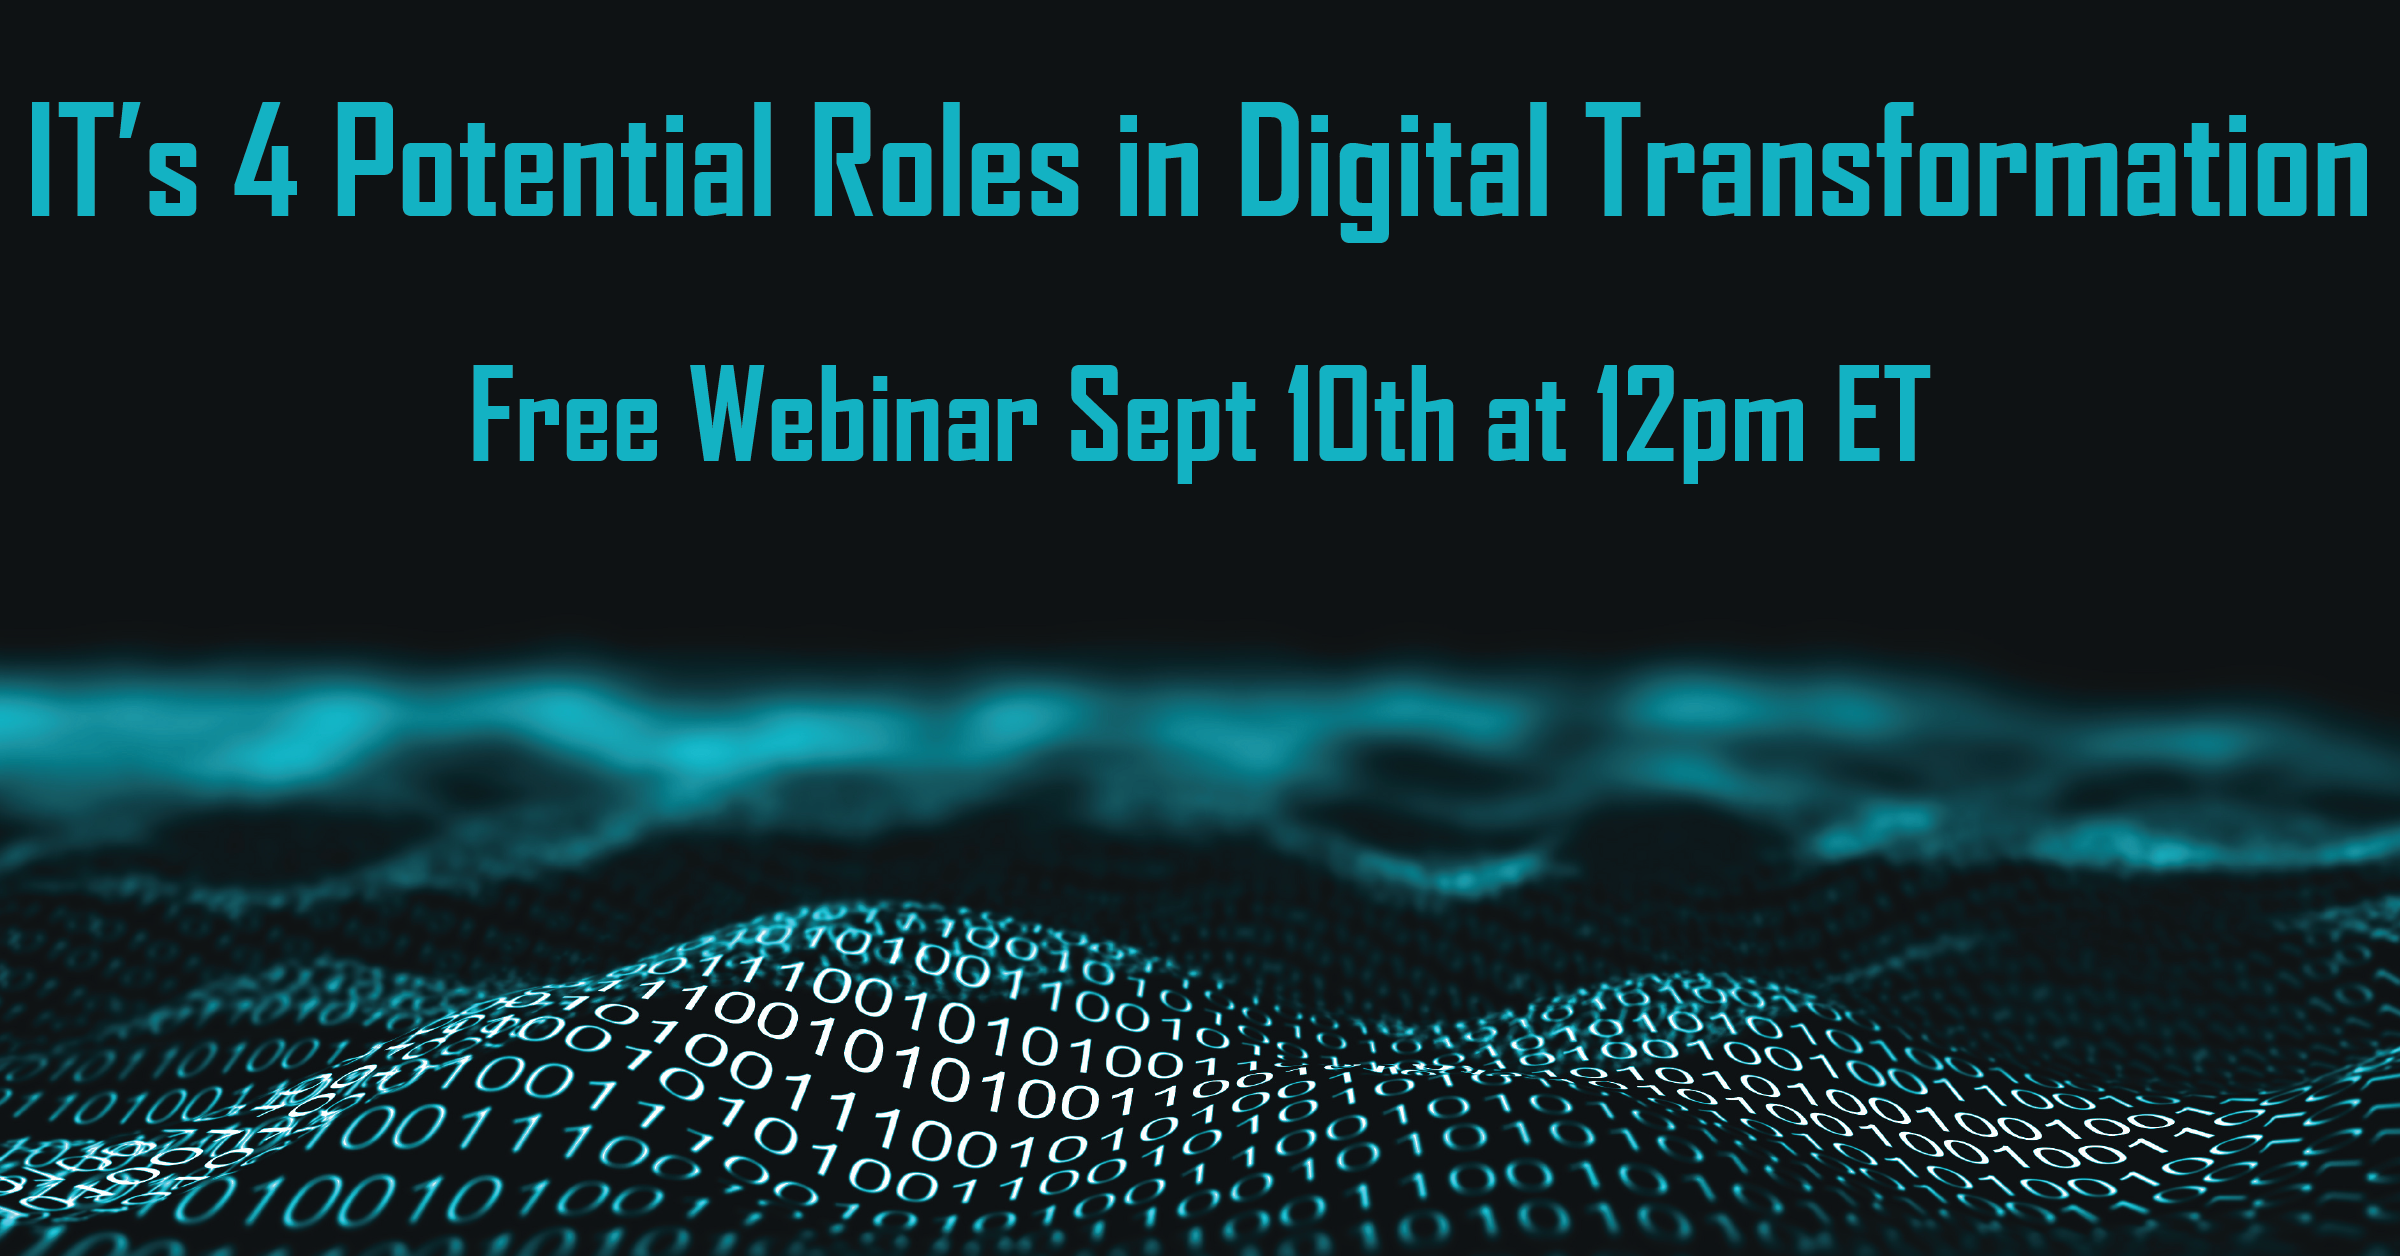 IT's 4 Potential Roles in Digital Transformation - Free Webinar